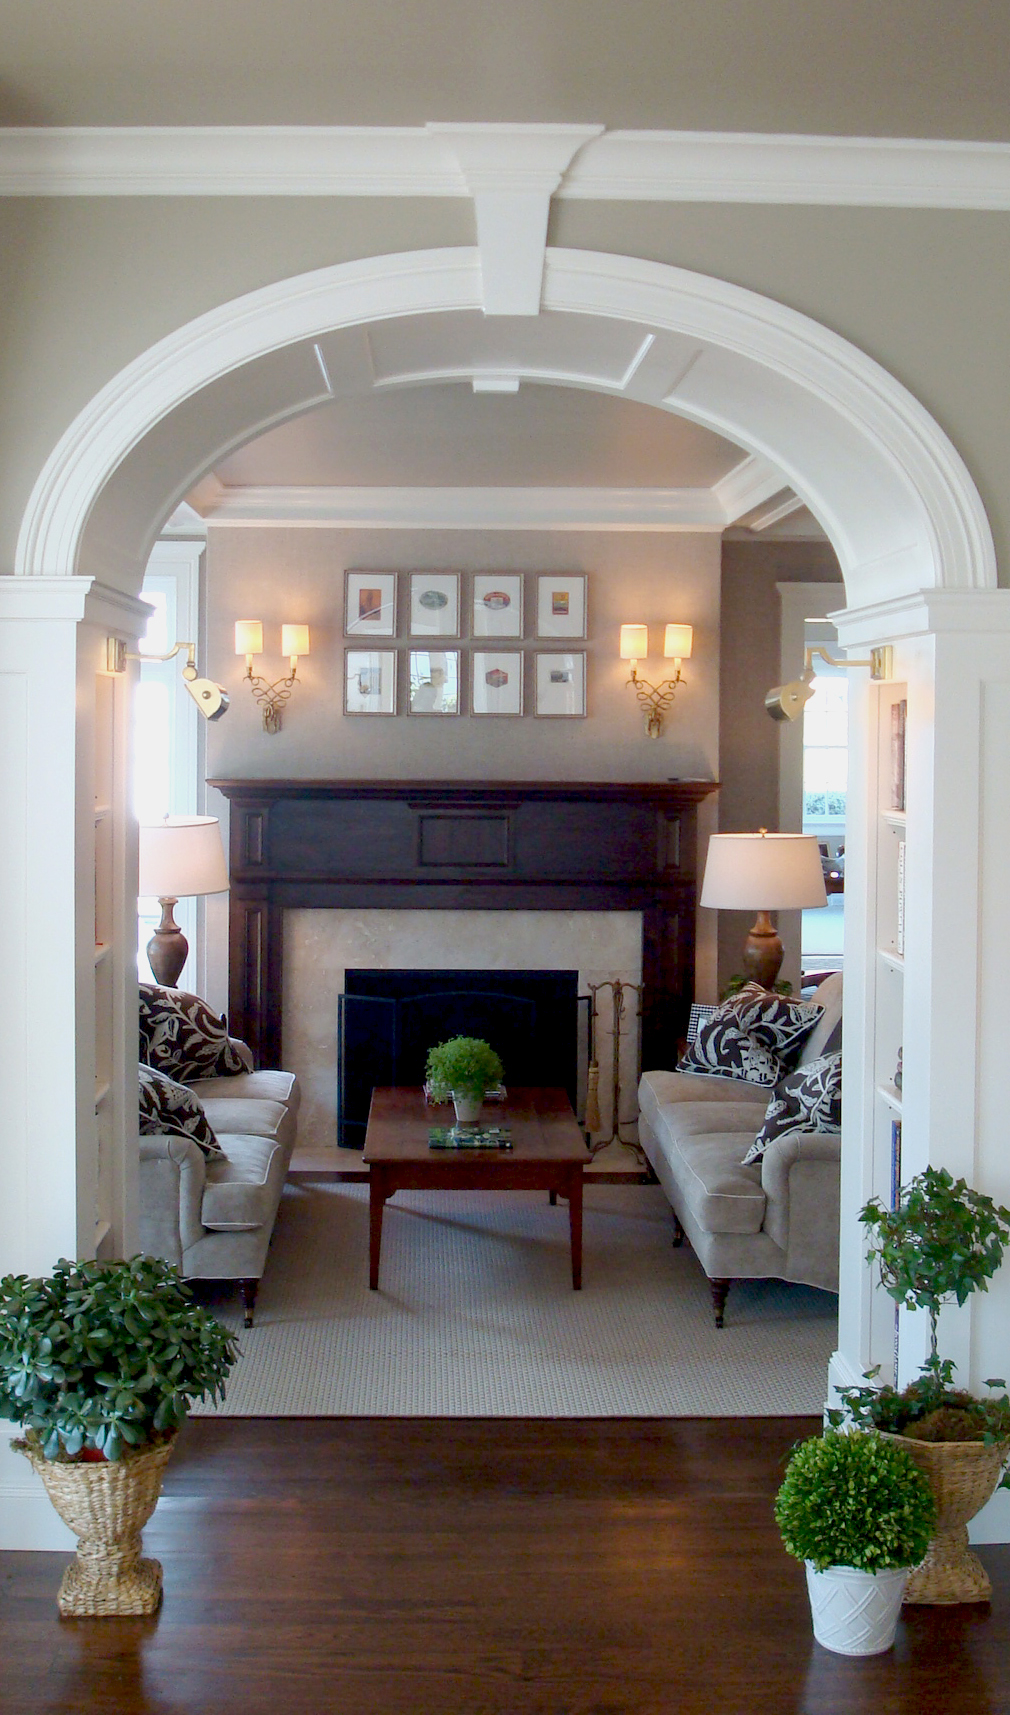 Renovation-colonial-fireplace-arch-old-greenwich-ct-interior